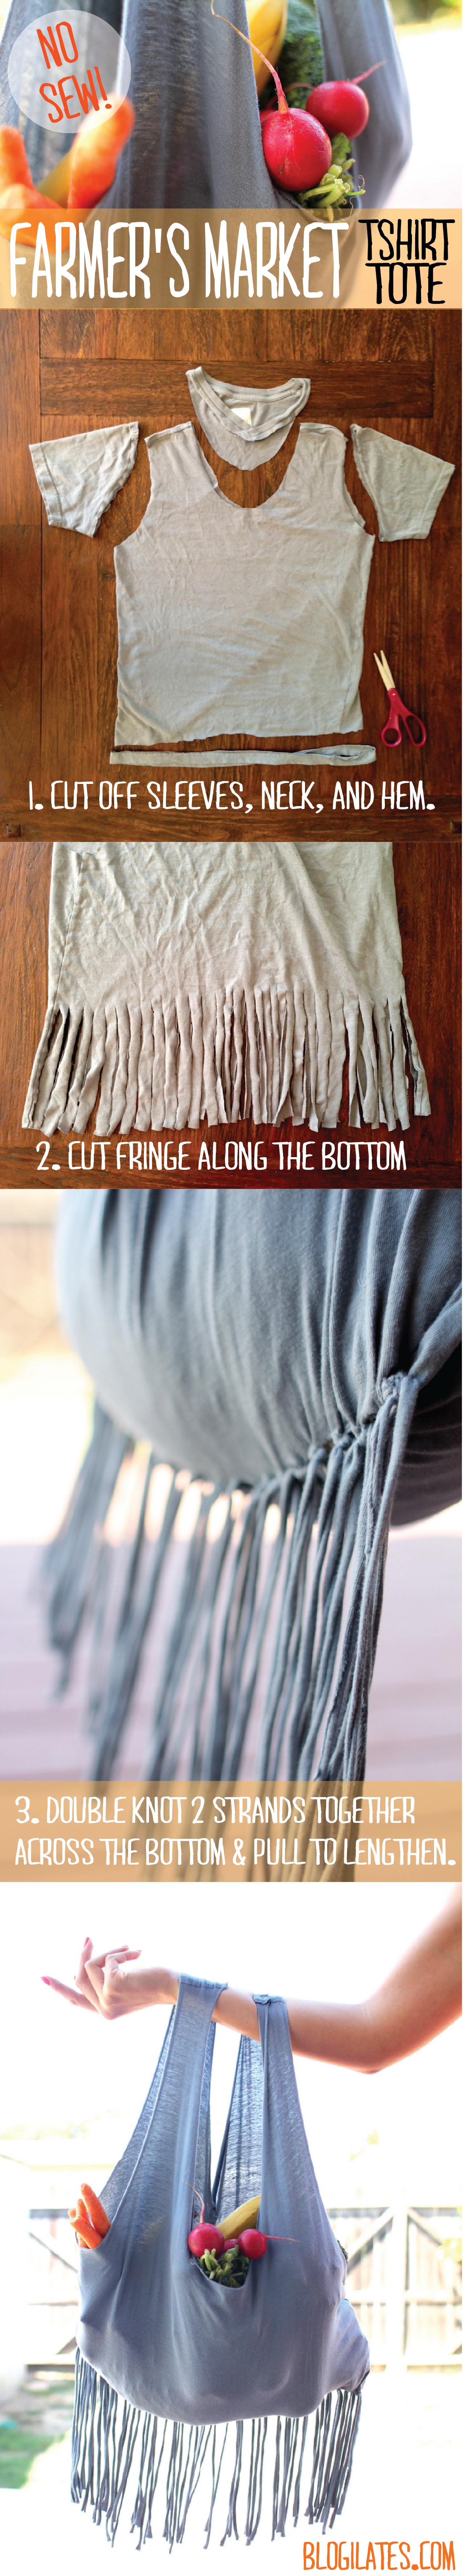 16 Upcycled DIY Tote Bag Tutorials You Can Make From Old